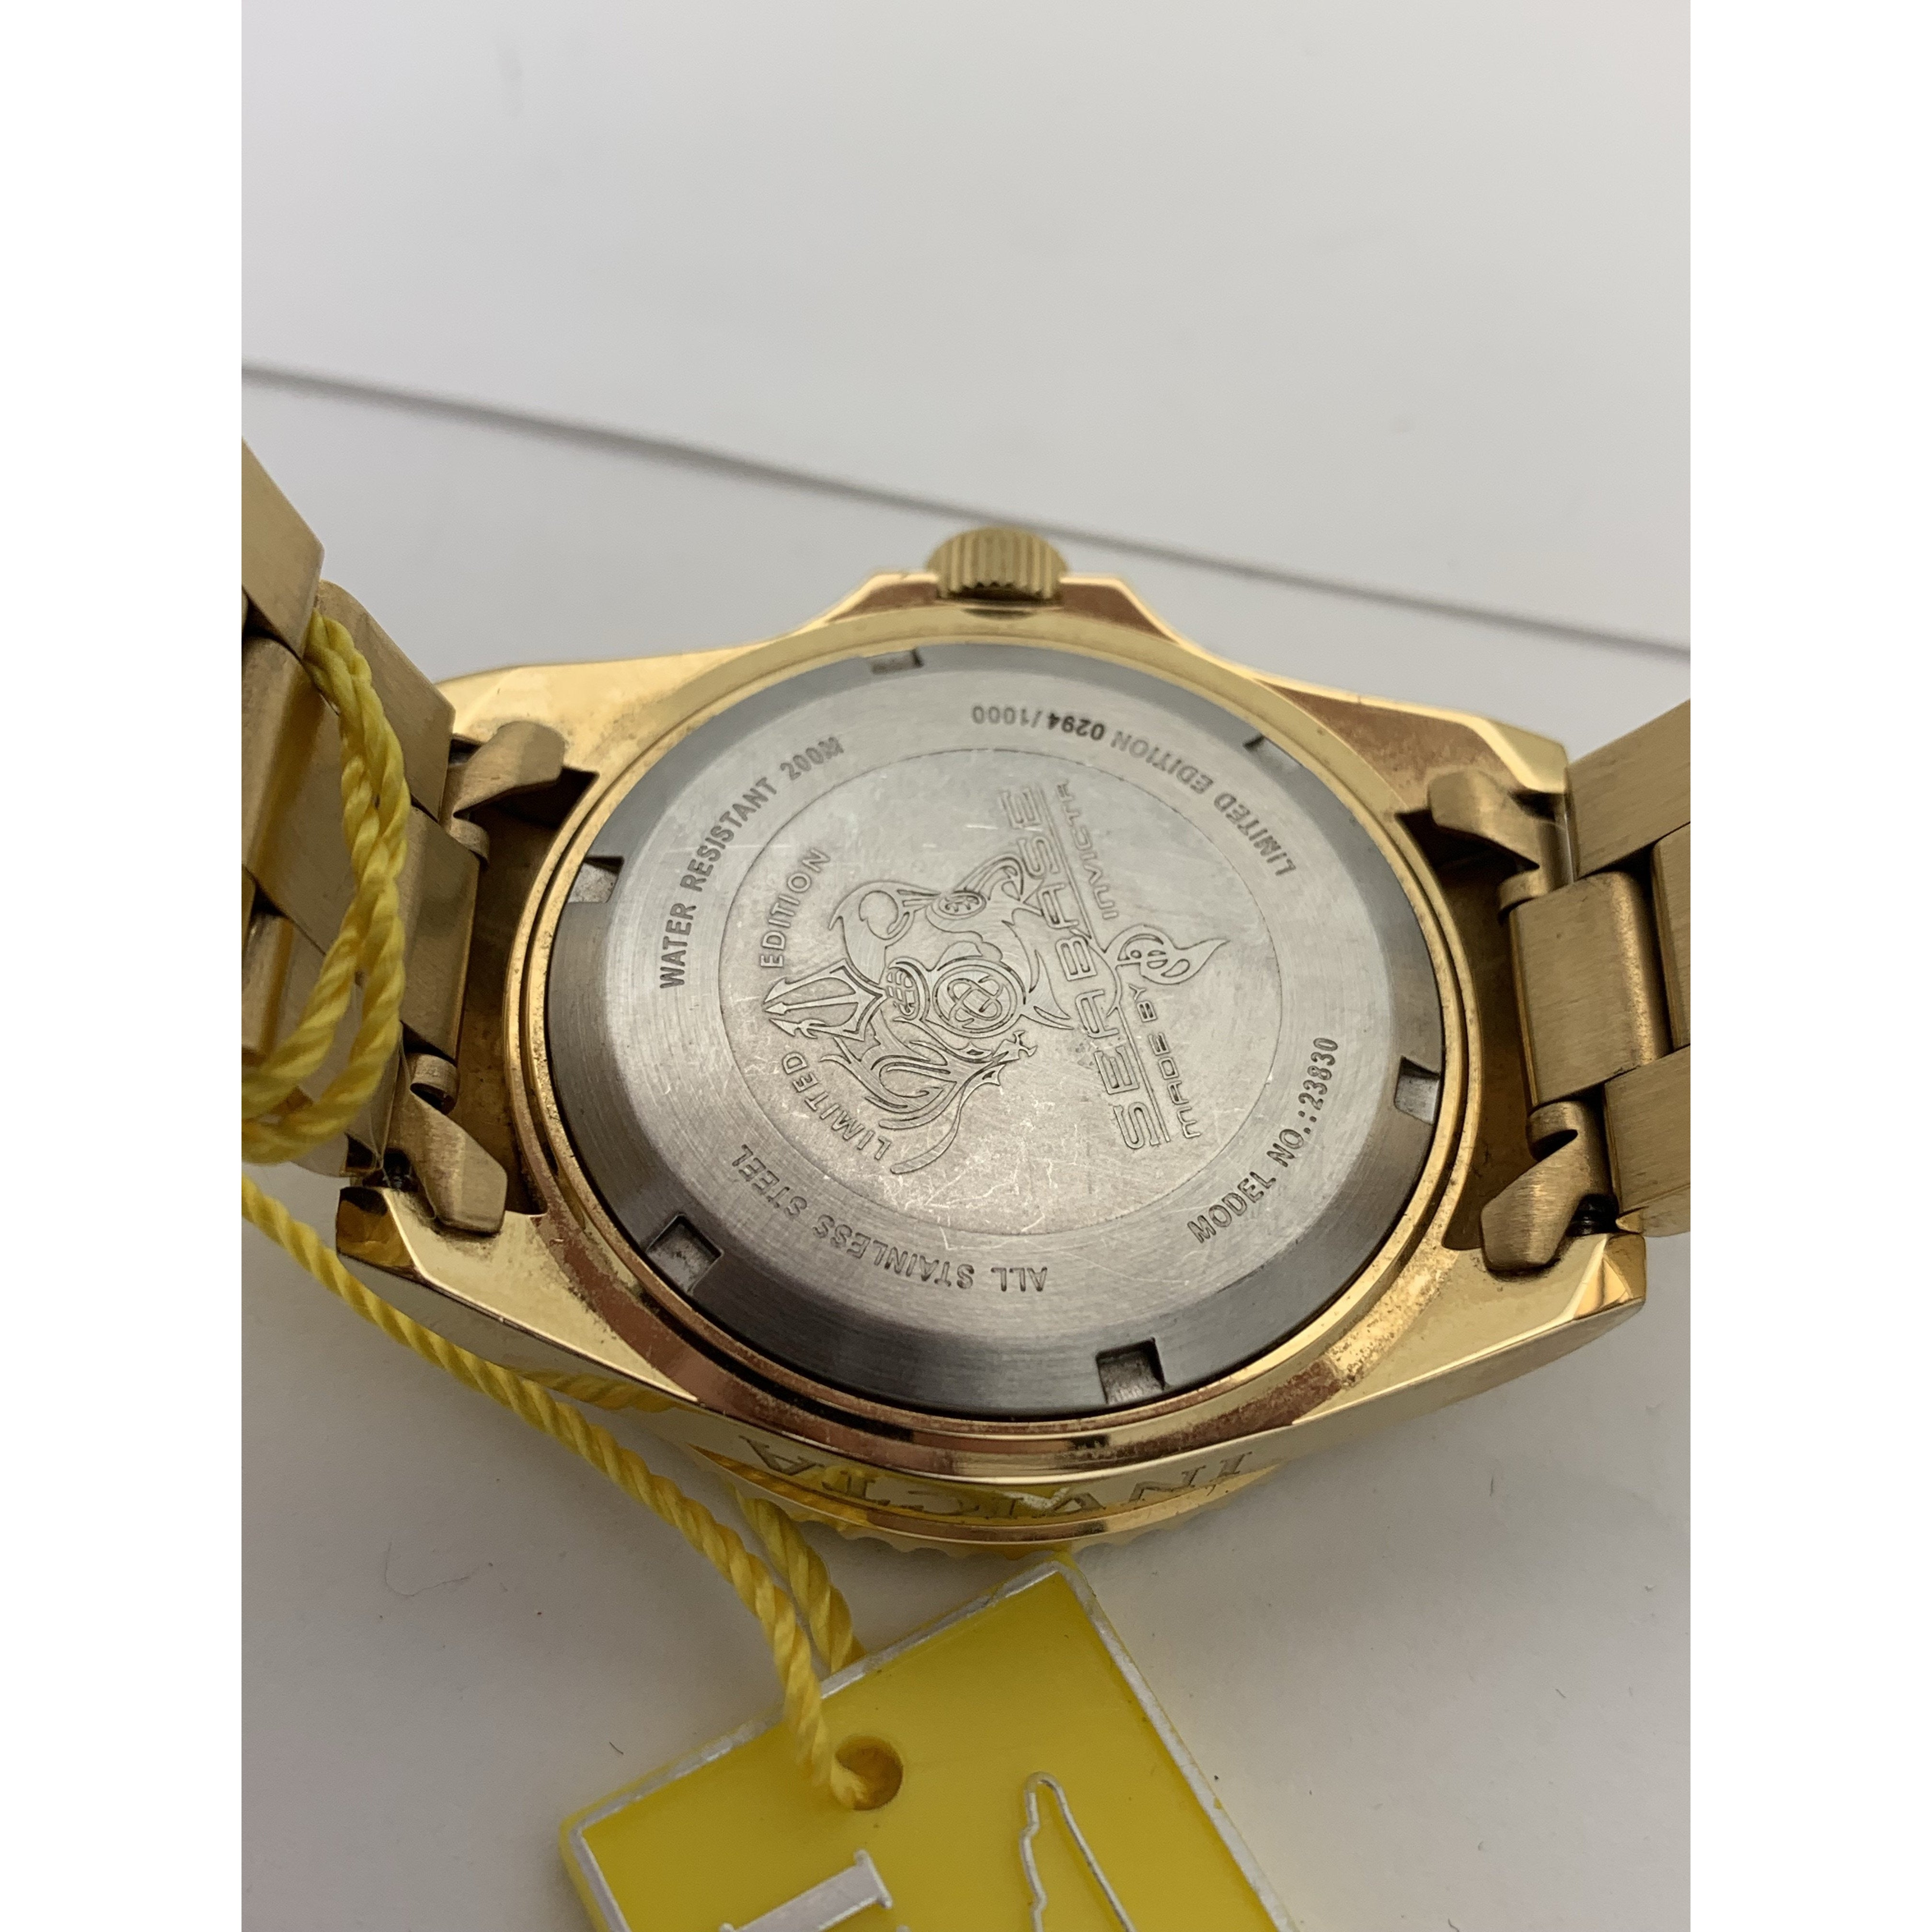 Invicta Ladies White MOP Dial Gold Tone Stainless Steel Watch 23830